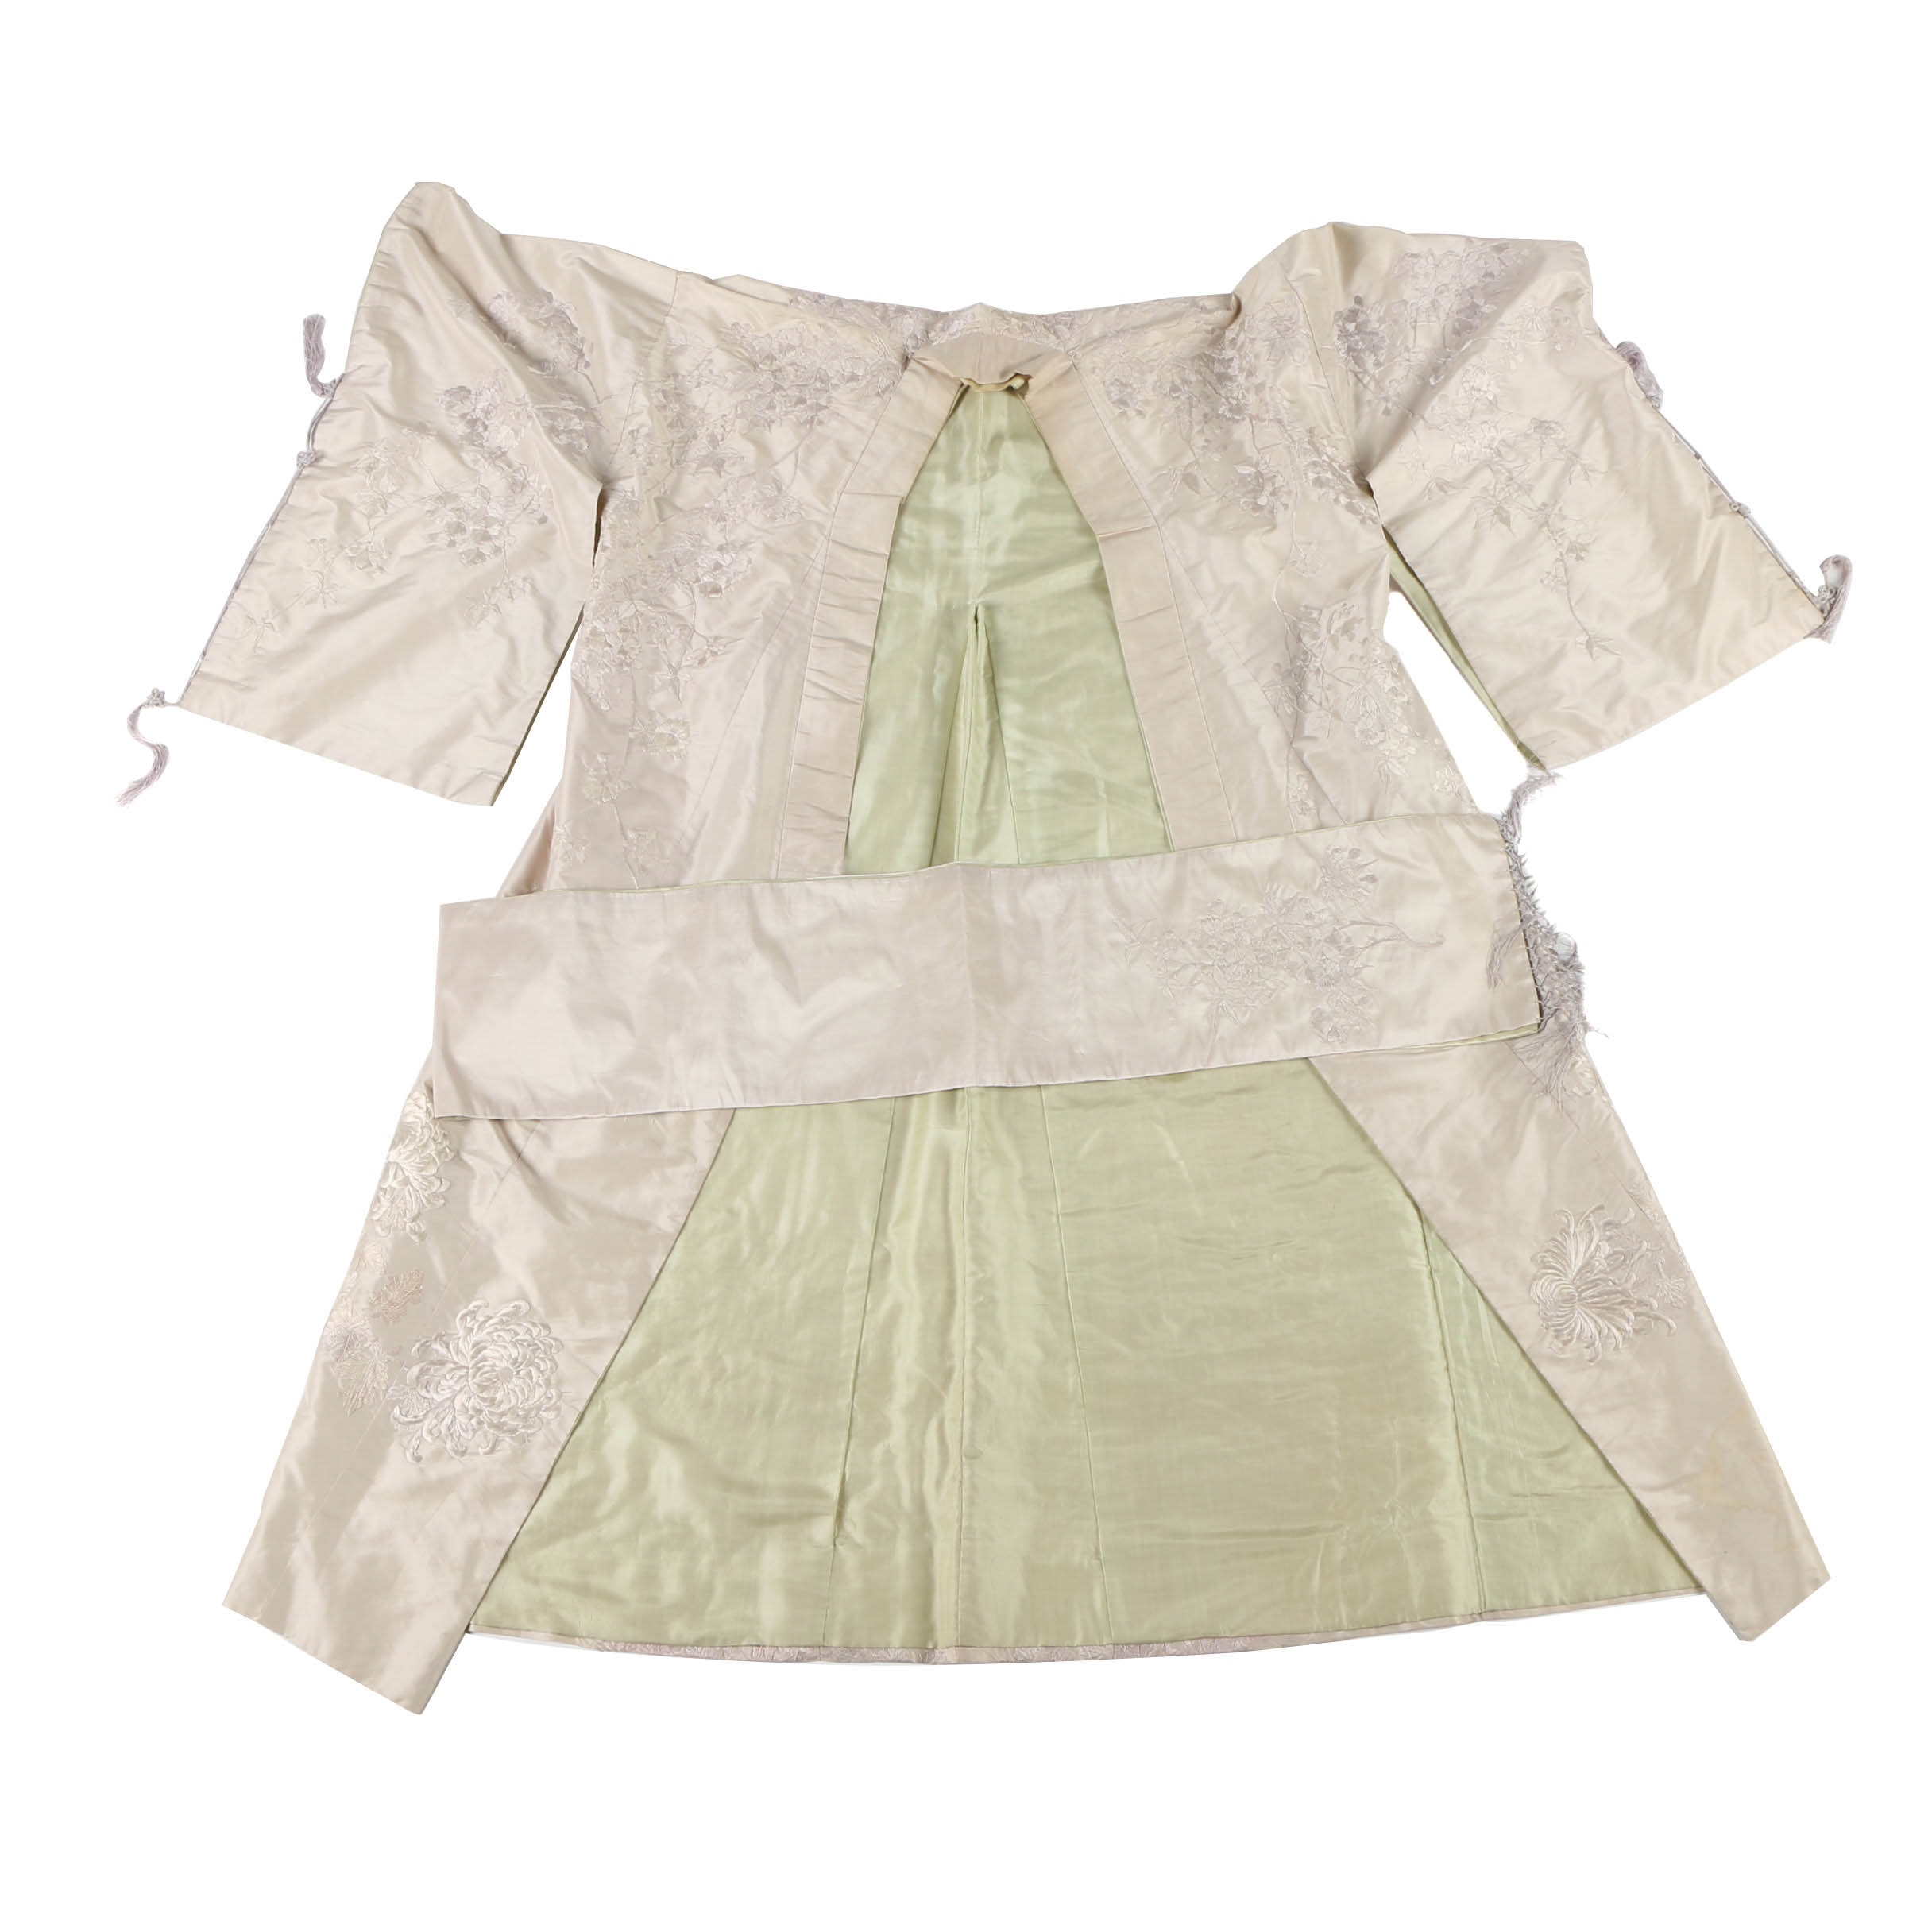 Vintage Cream-Colored Silk Kimono With Embroidered Floral Motif